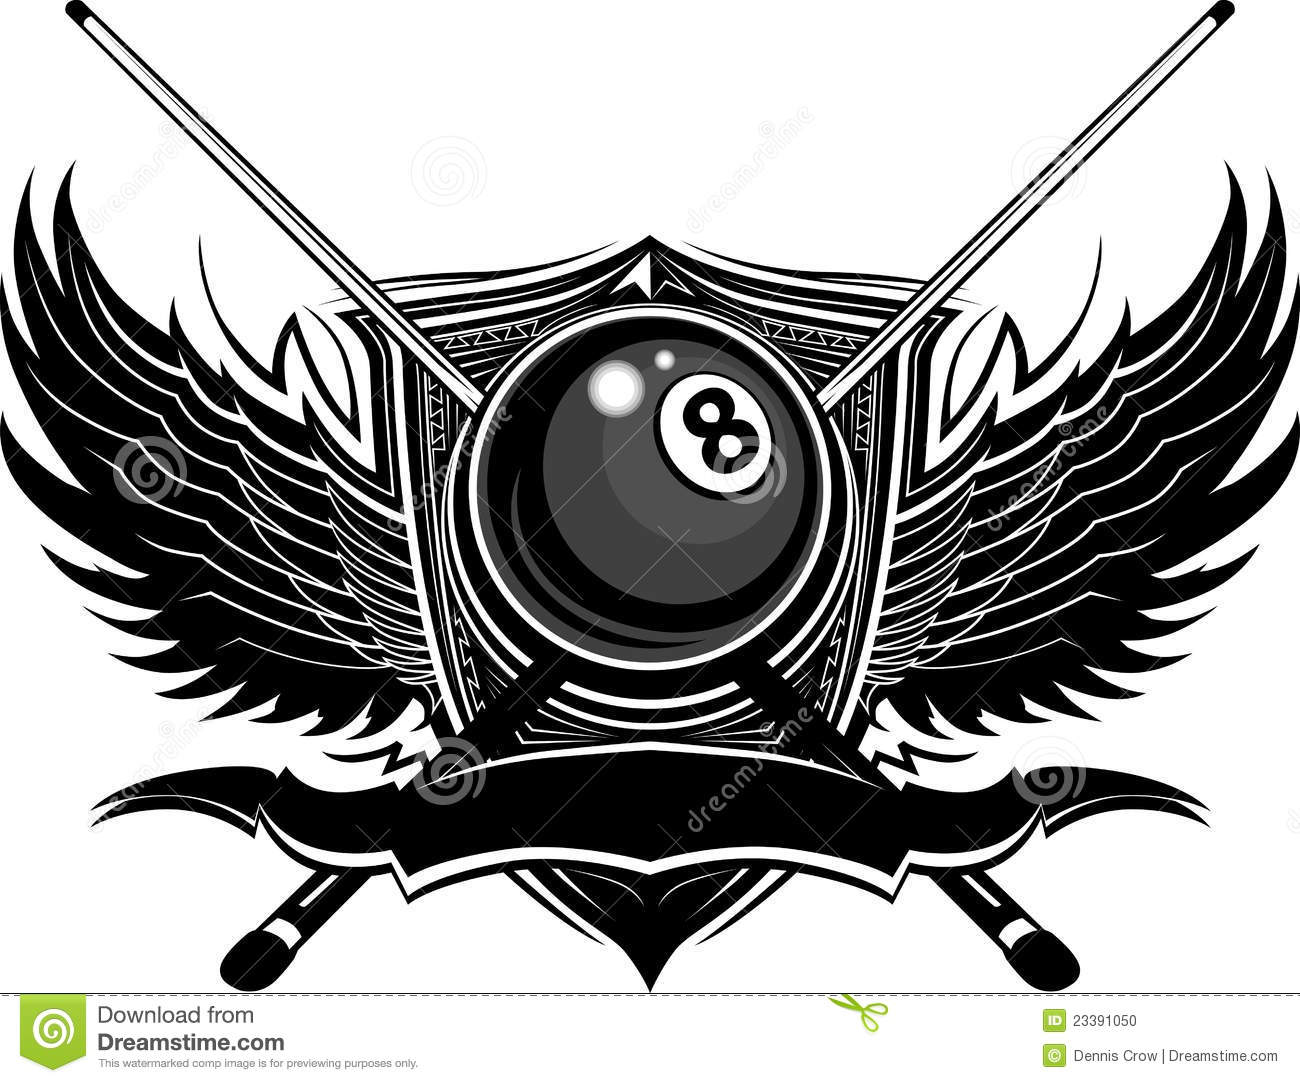 Billiards Eight Ball with Ornate Wings S-Billiards Eight Ball with Ornate Wings Stock Photo-18